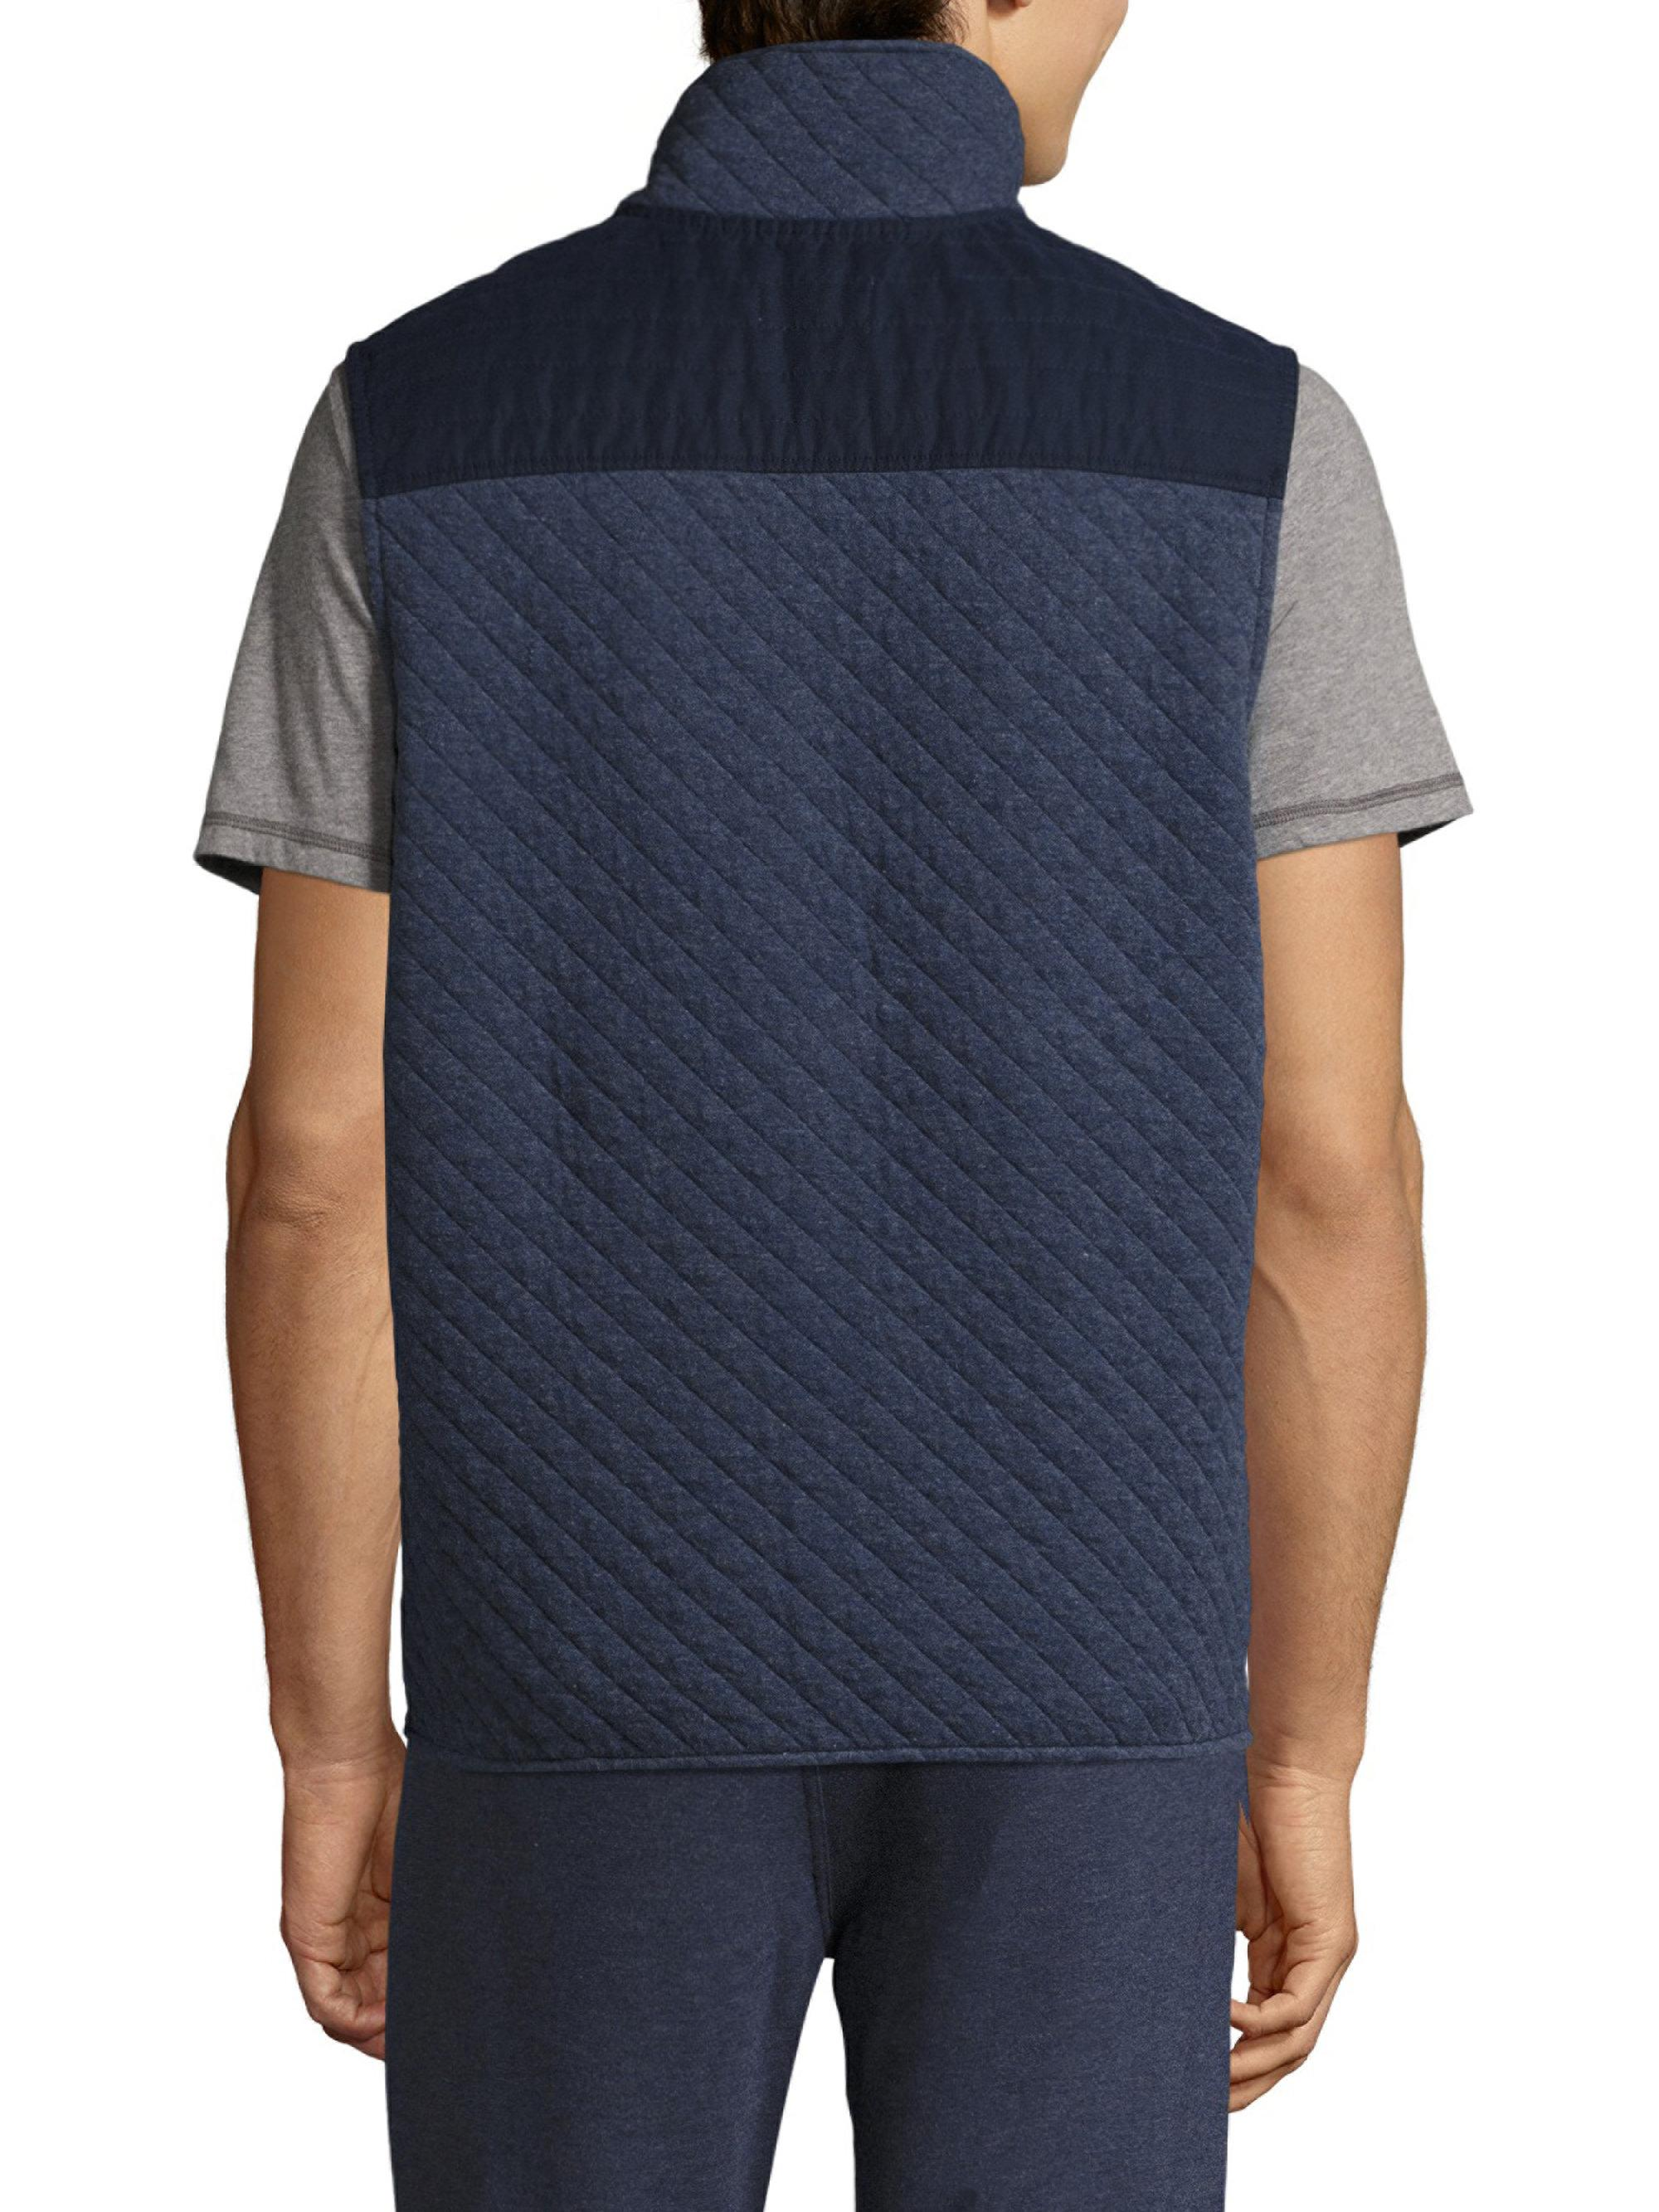 surfside guys ★ surfside supply colorblock fleece vest @ review price mens sweatshirts amp  this is because these guys notice how to impress a maiden and how to natter to.